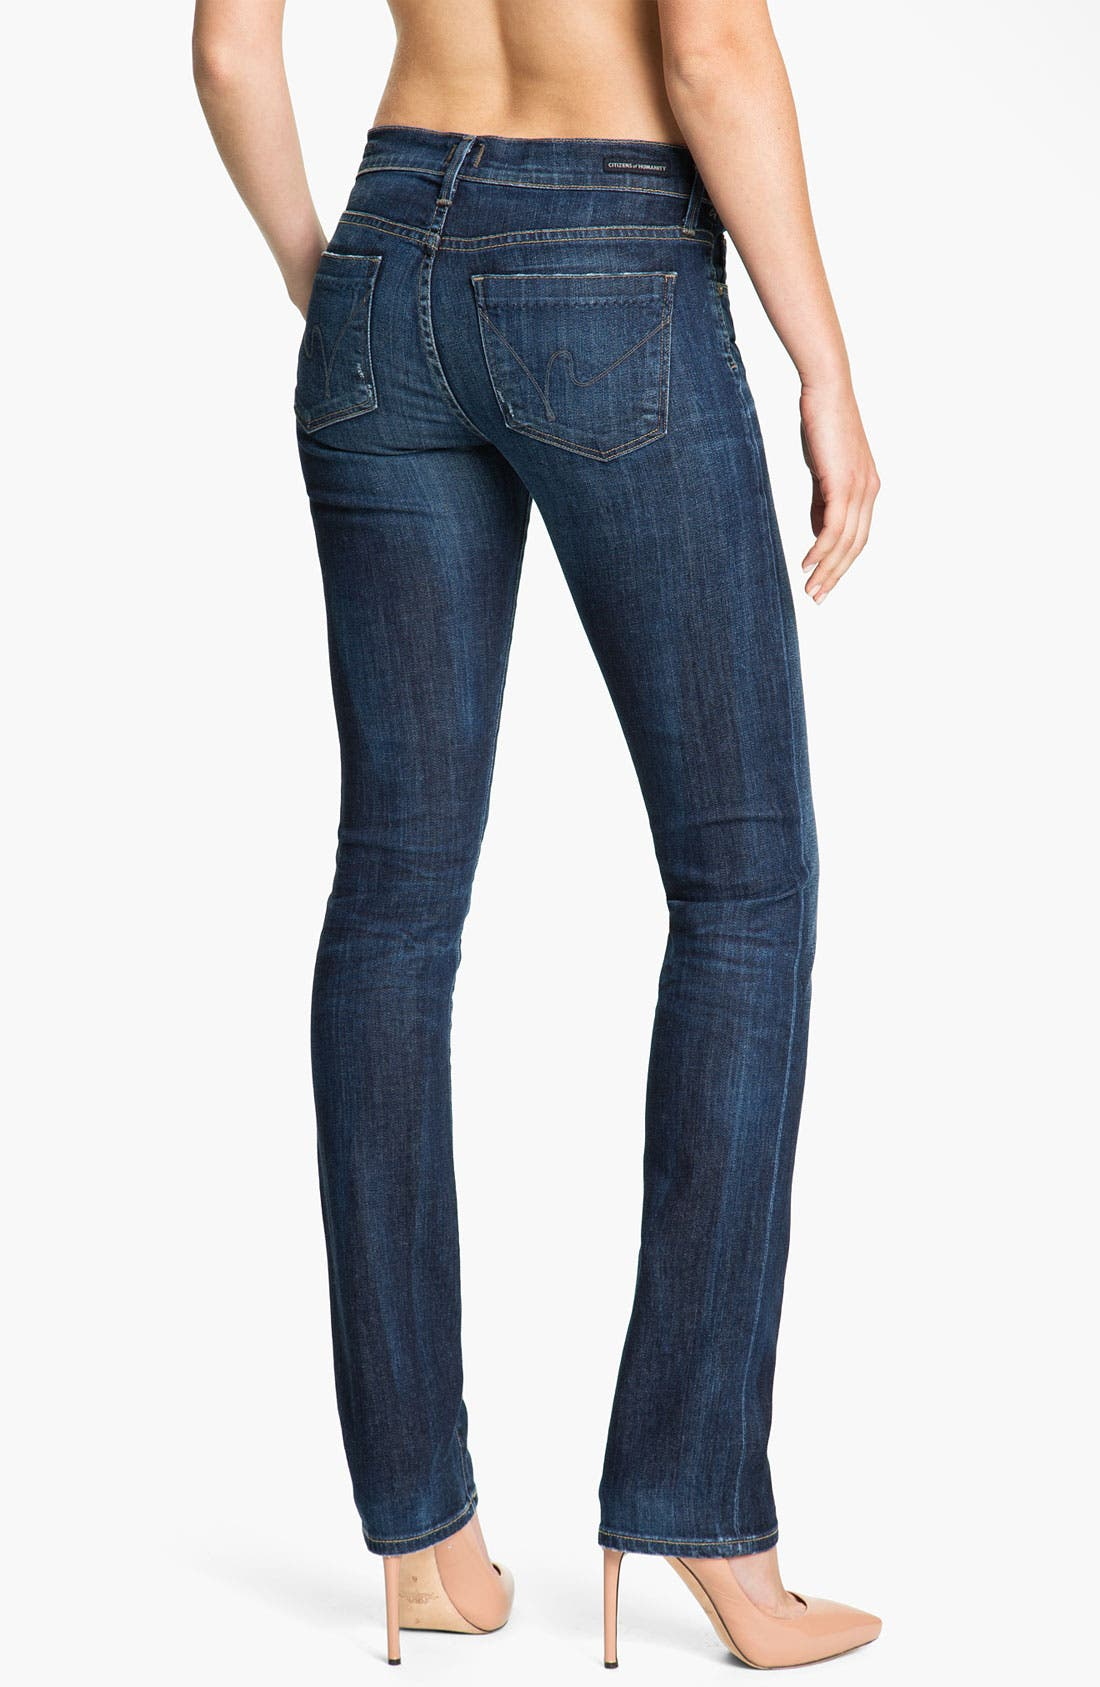 Alternate Image 2  - Citizens of Humanity 'Ava' Straight Leg Stretch Denim Jeans (New Spectrum)